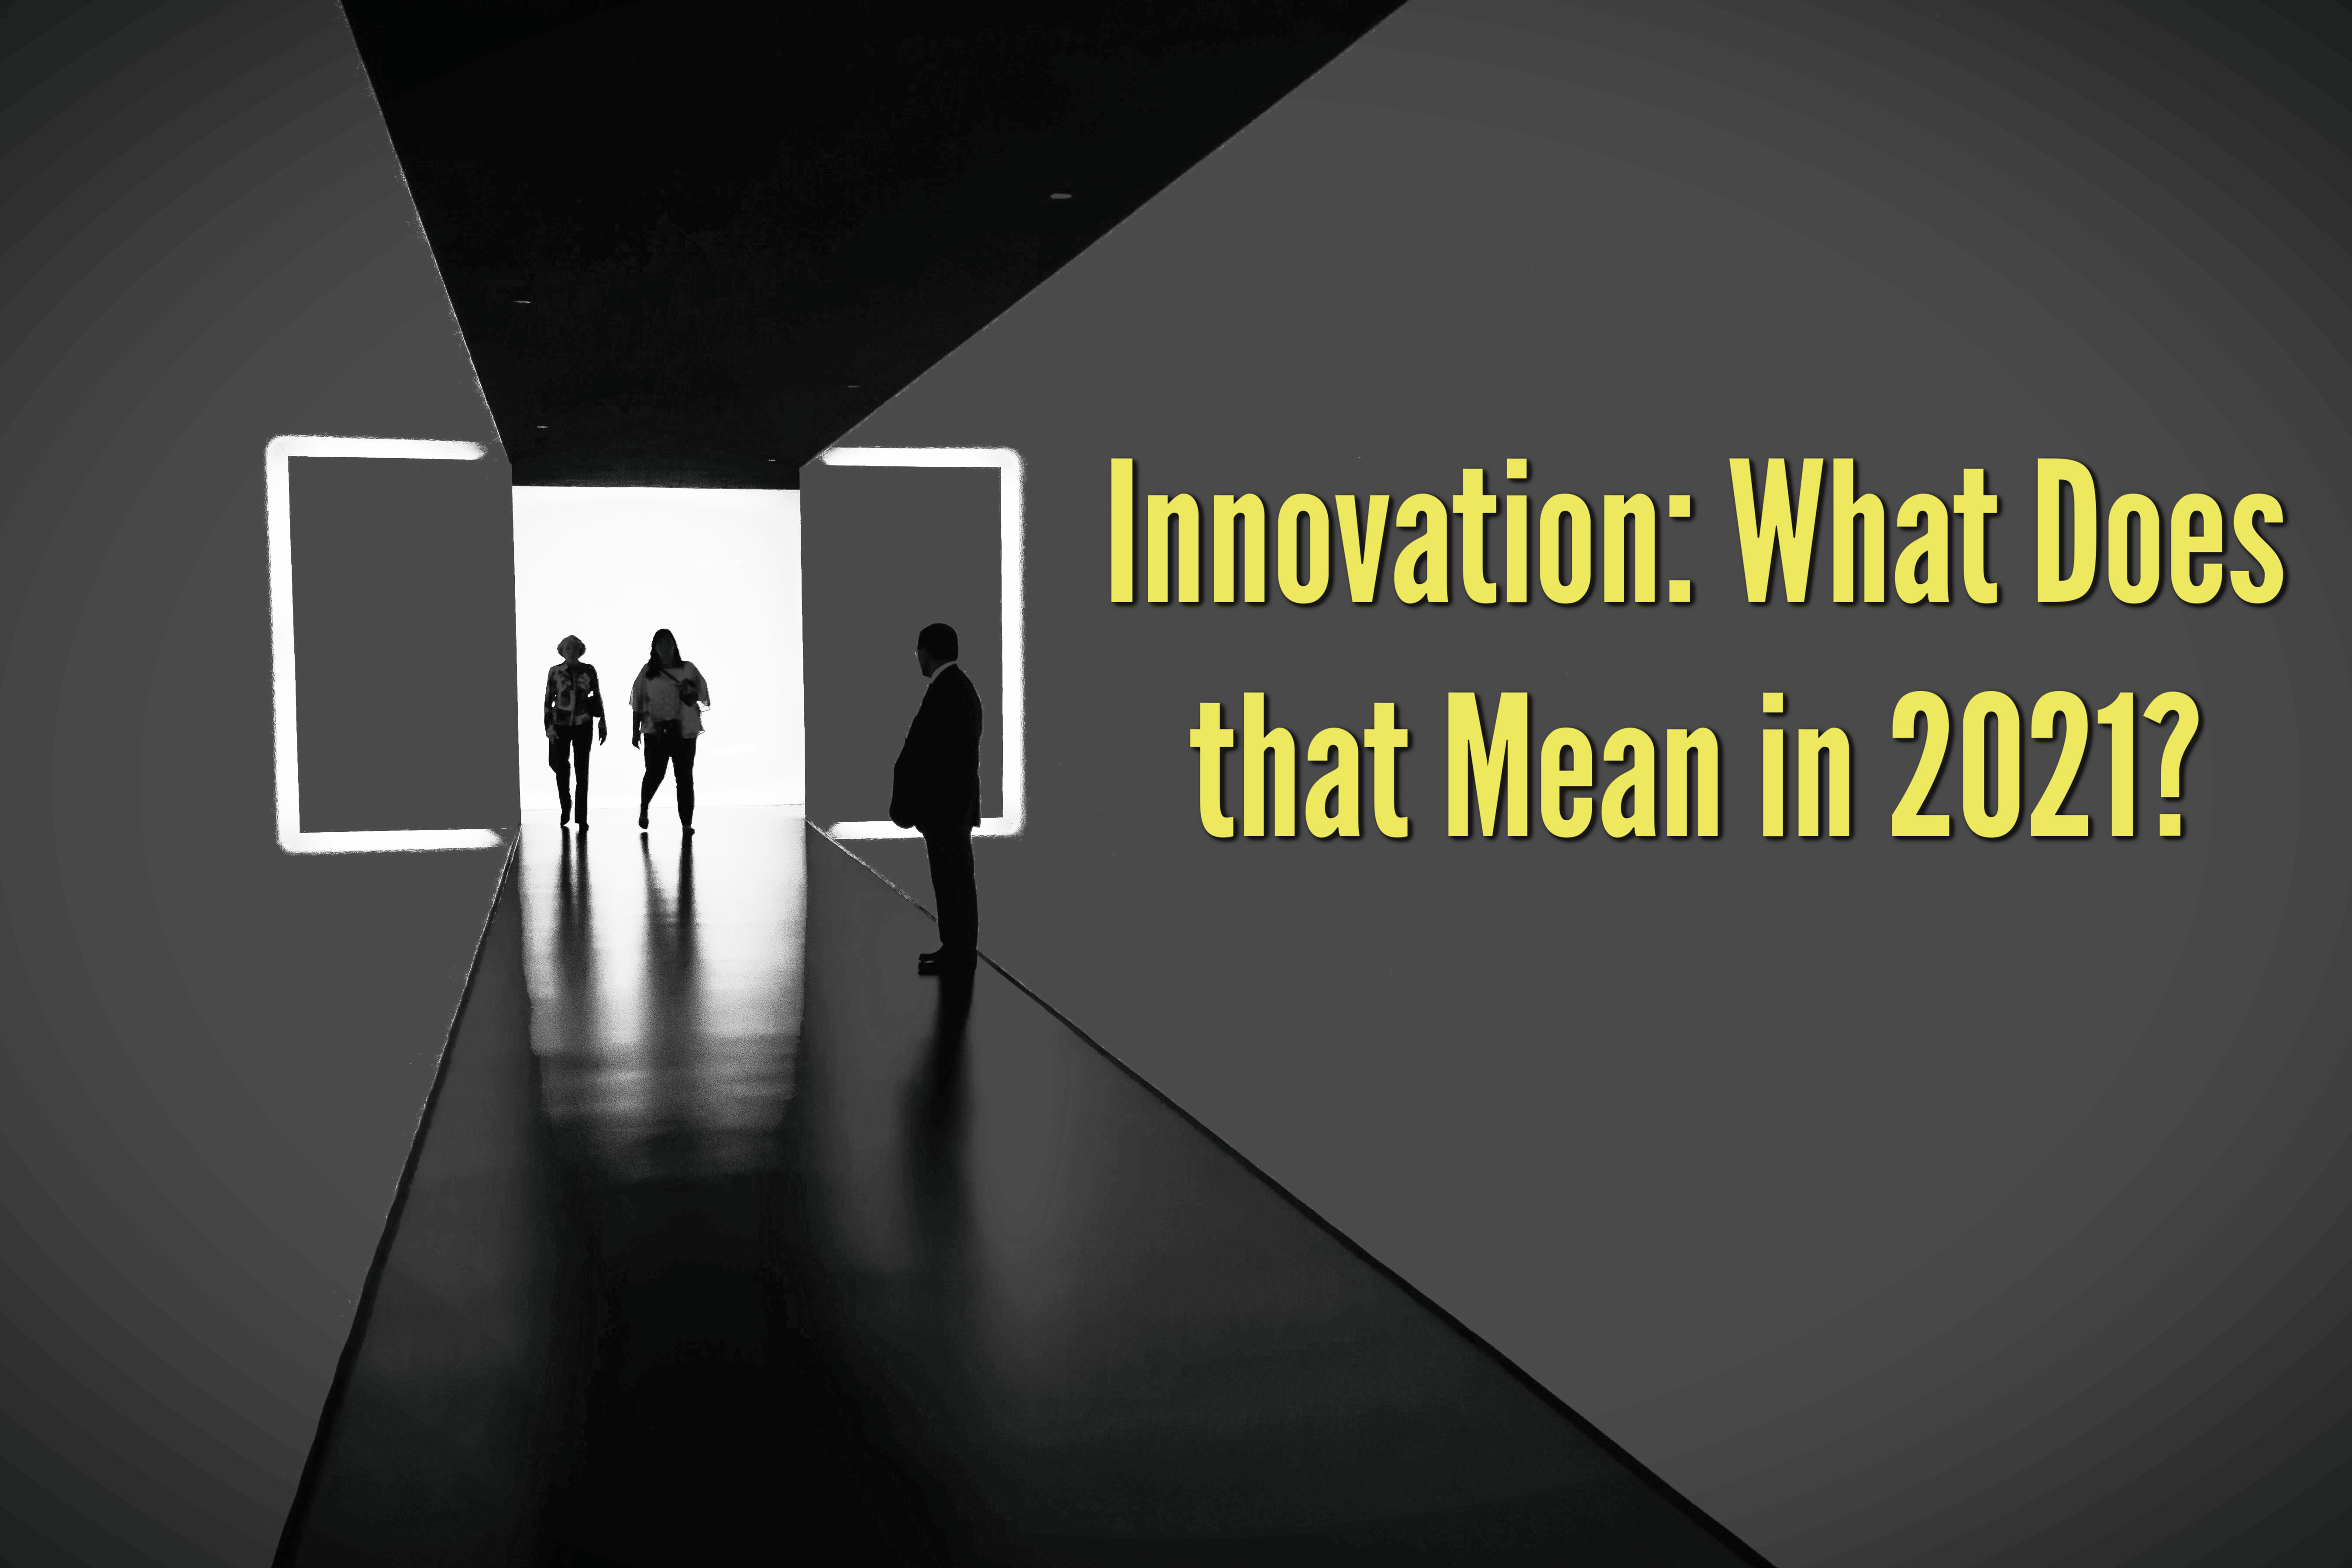 Innovation: What Does that Mean in 2021?